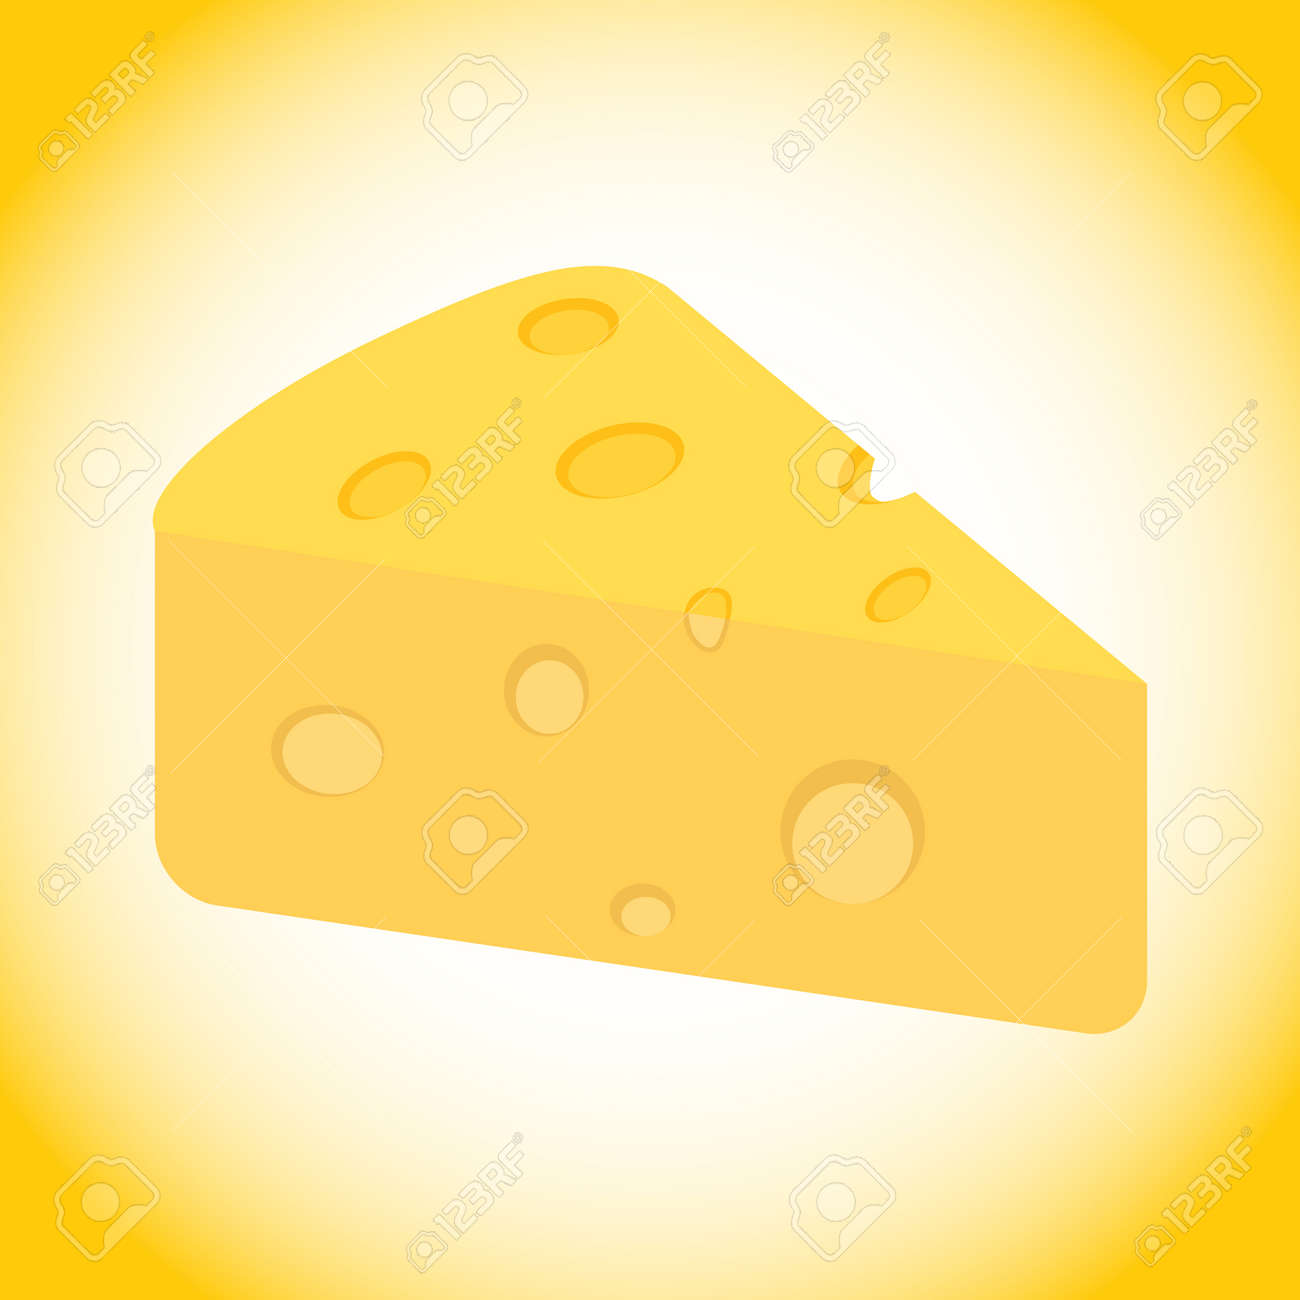 Cheese, a piece of cheese in isometric view on a white background. Vector illustration. Vector. - 162890979